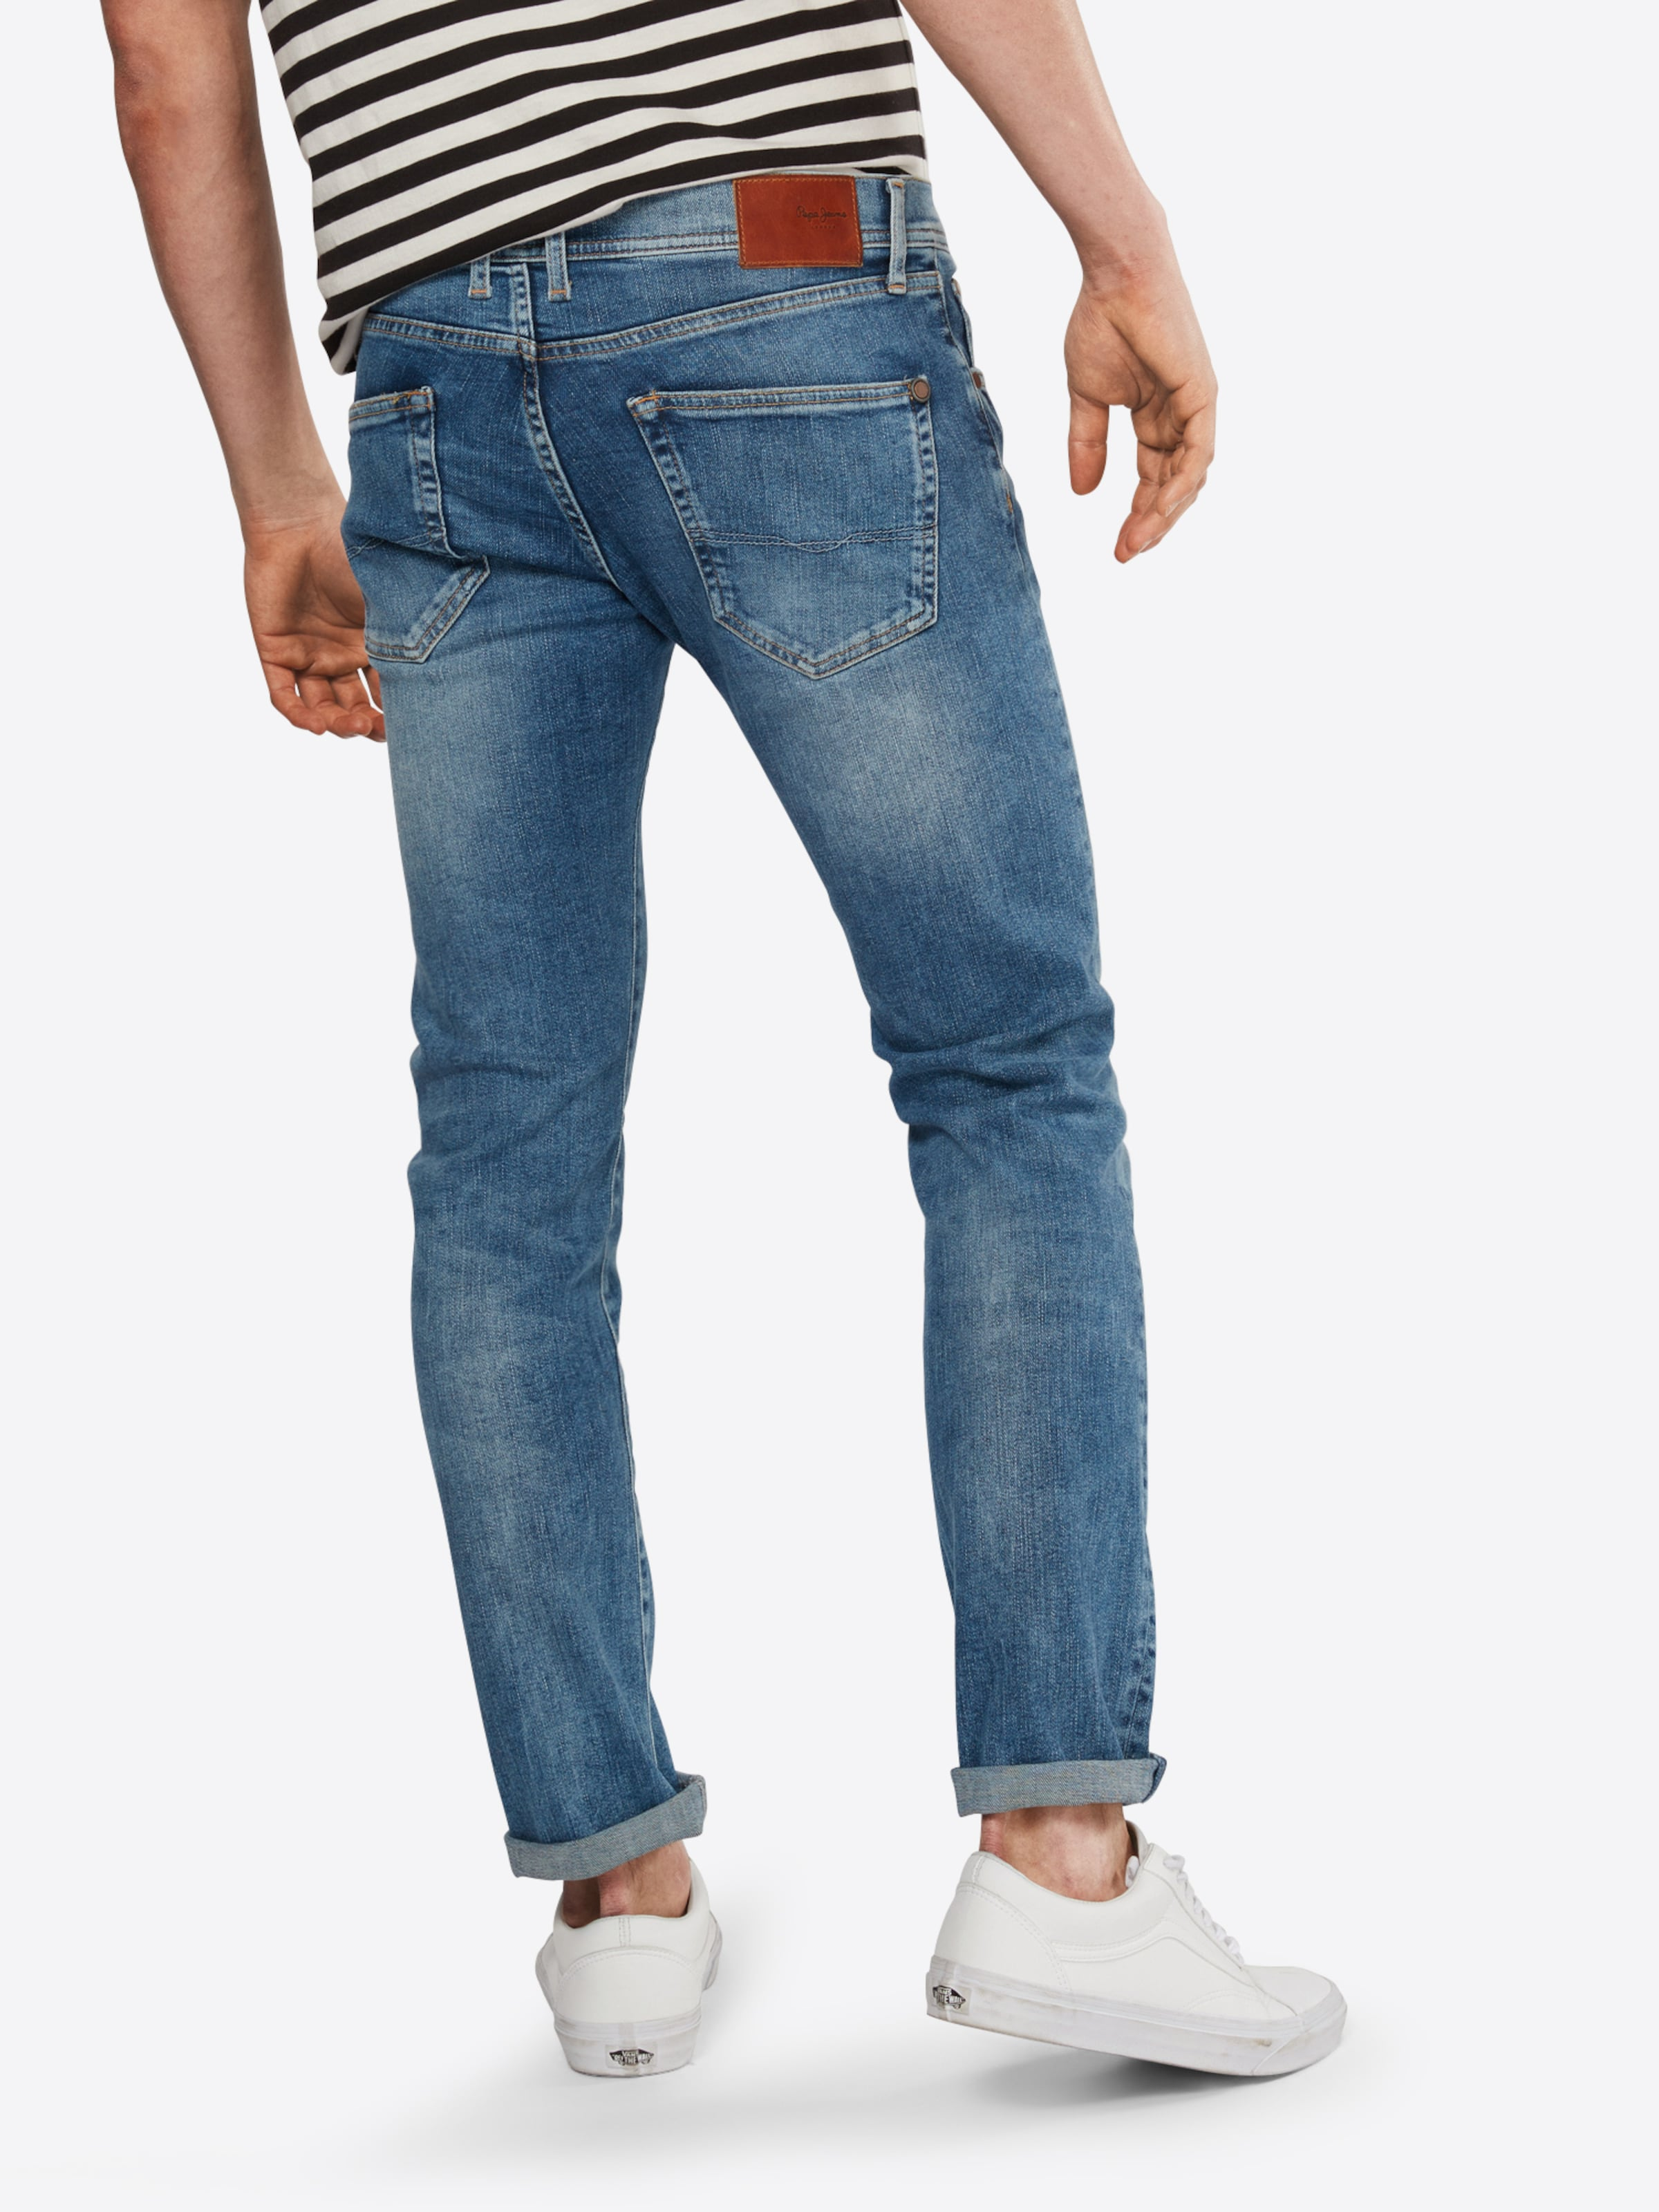 Pepe Jeans Jeans 'Cane' Spielraum Wiki Outlet Neueste 9doCQ